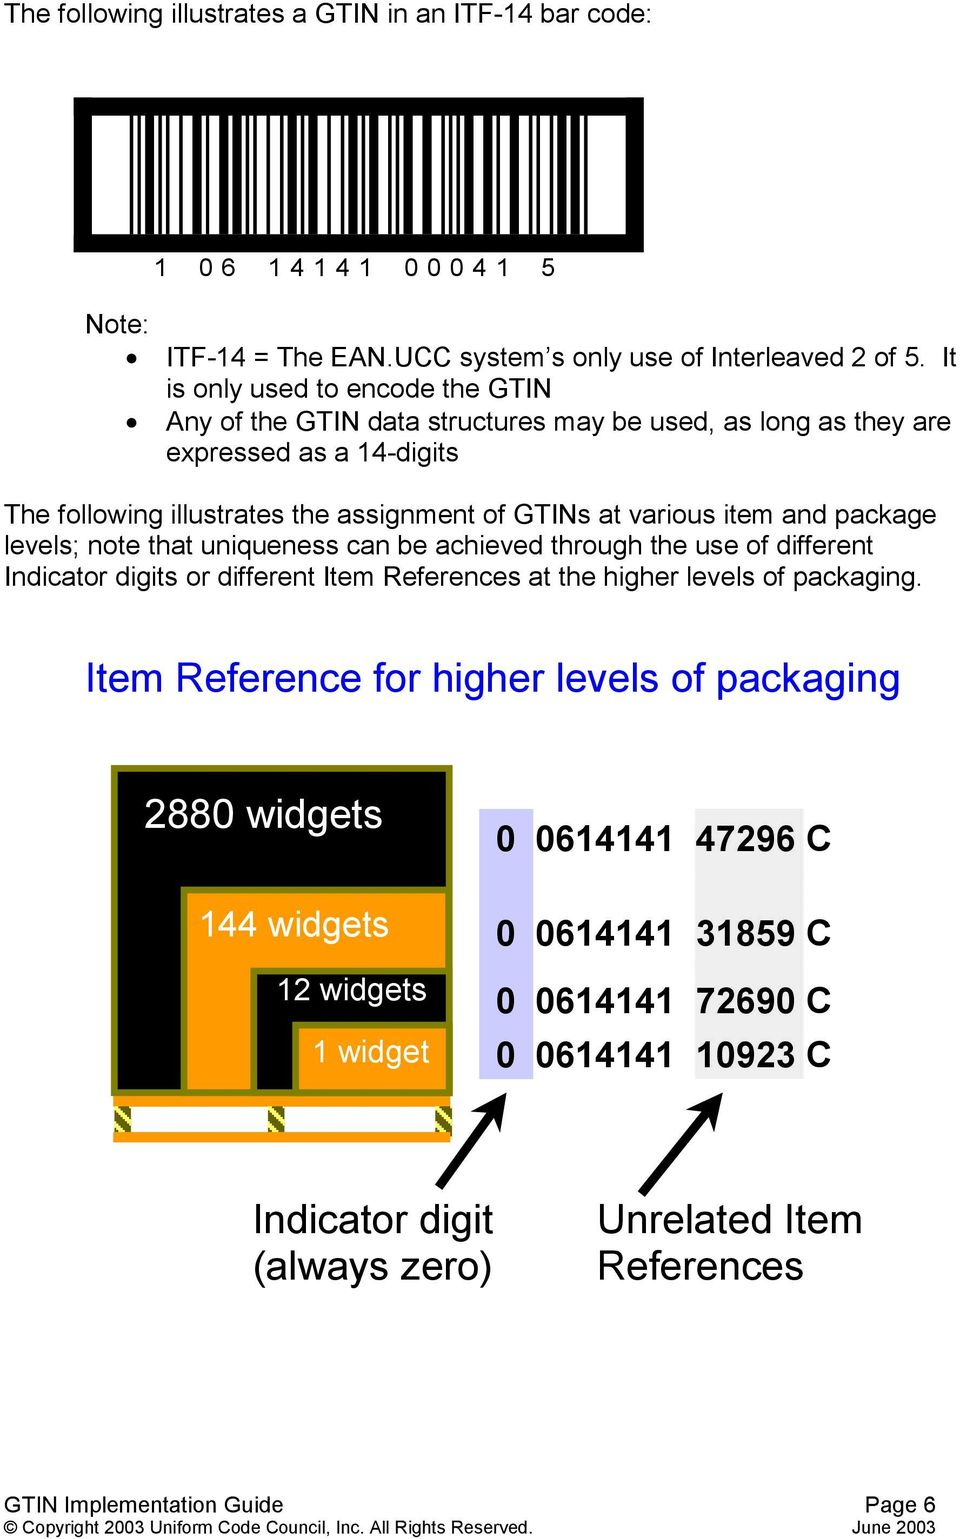 item and package levels; note that uniqueness can be achieved through the use of different Indicator digits or different Item References at the higher levels of packaging.